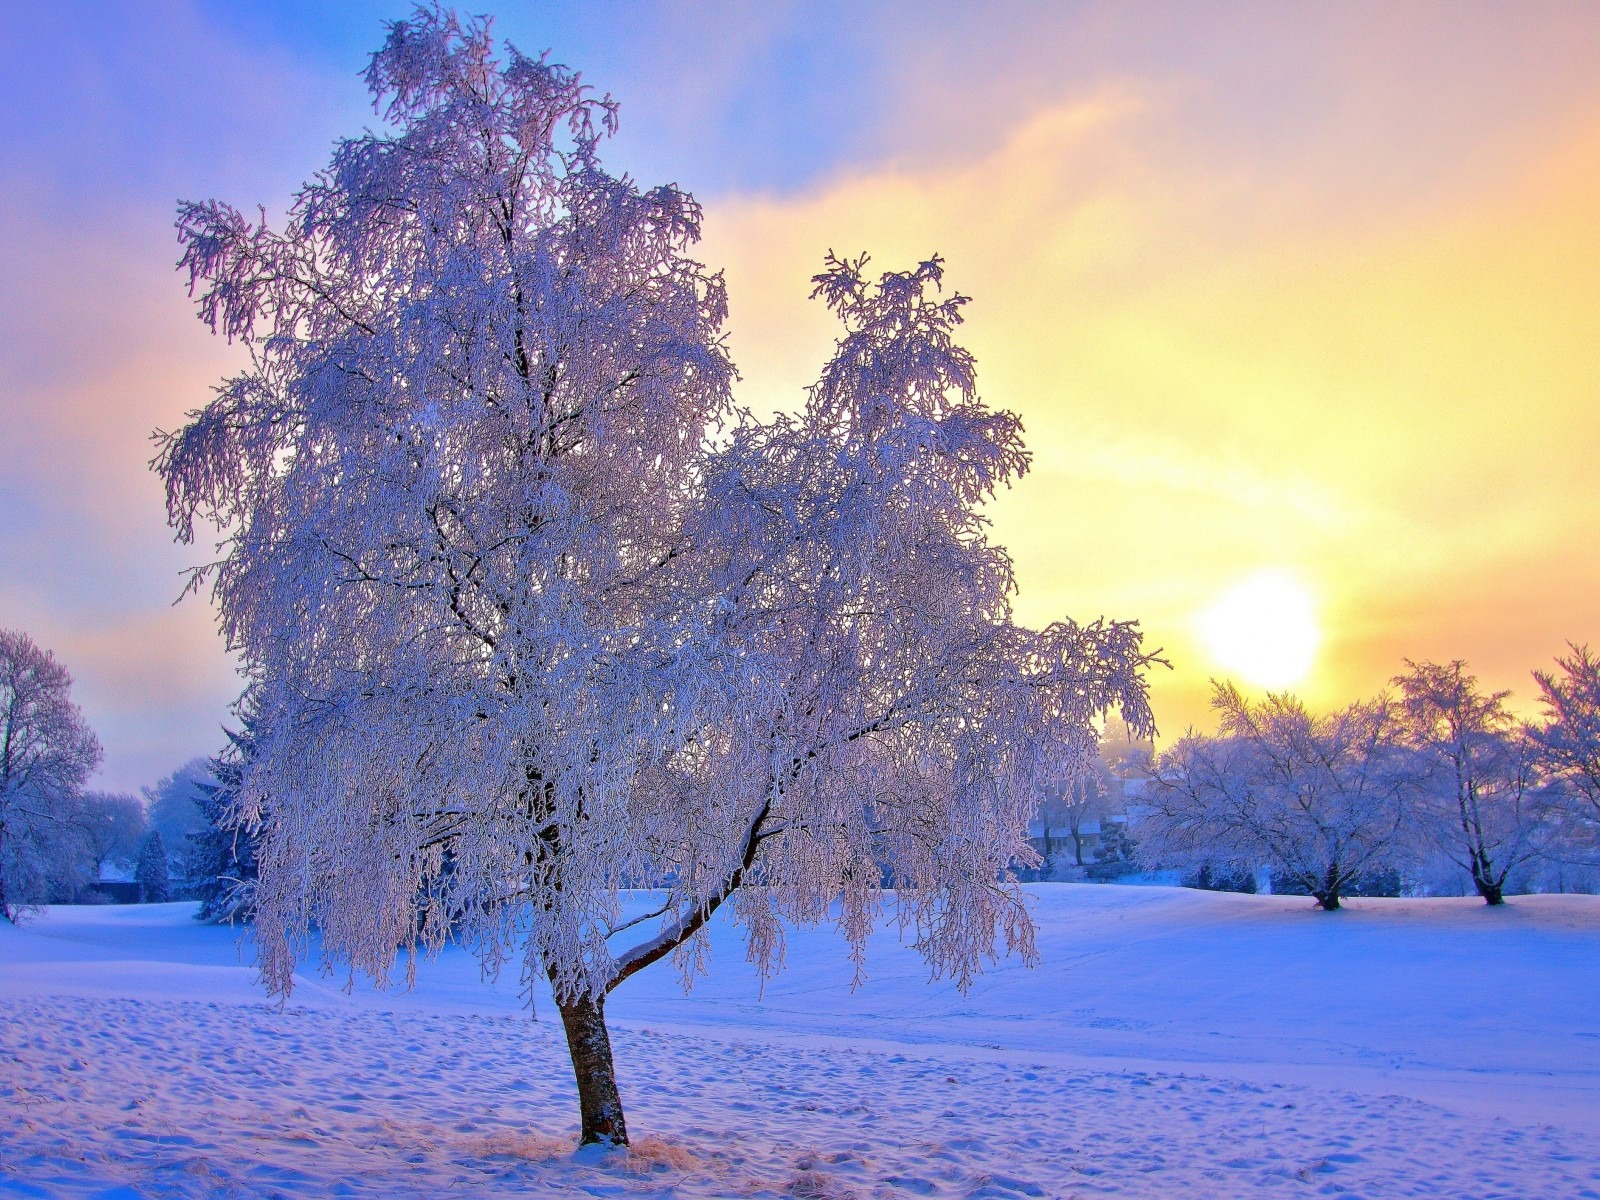 Beautiful Winter Landscape 1600x1200 wallpaper